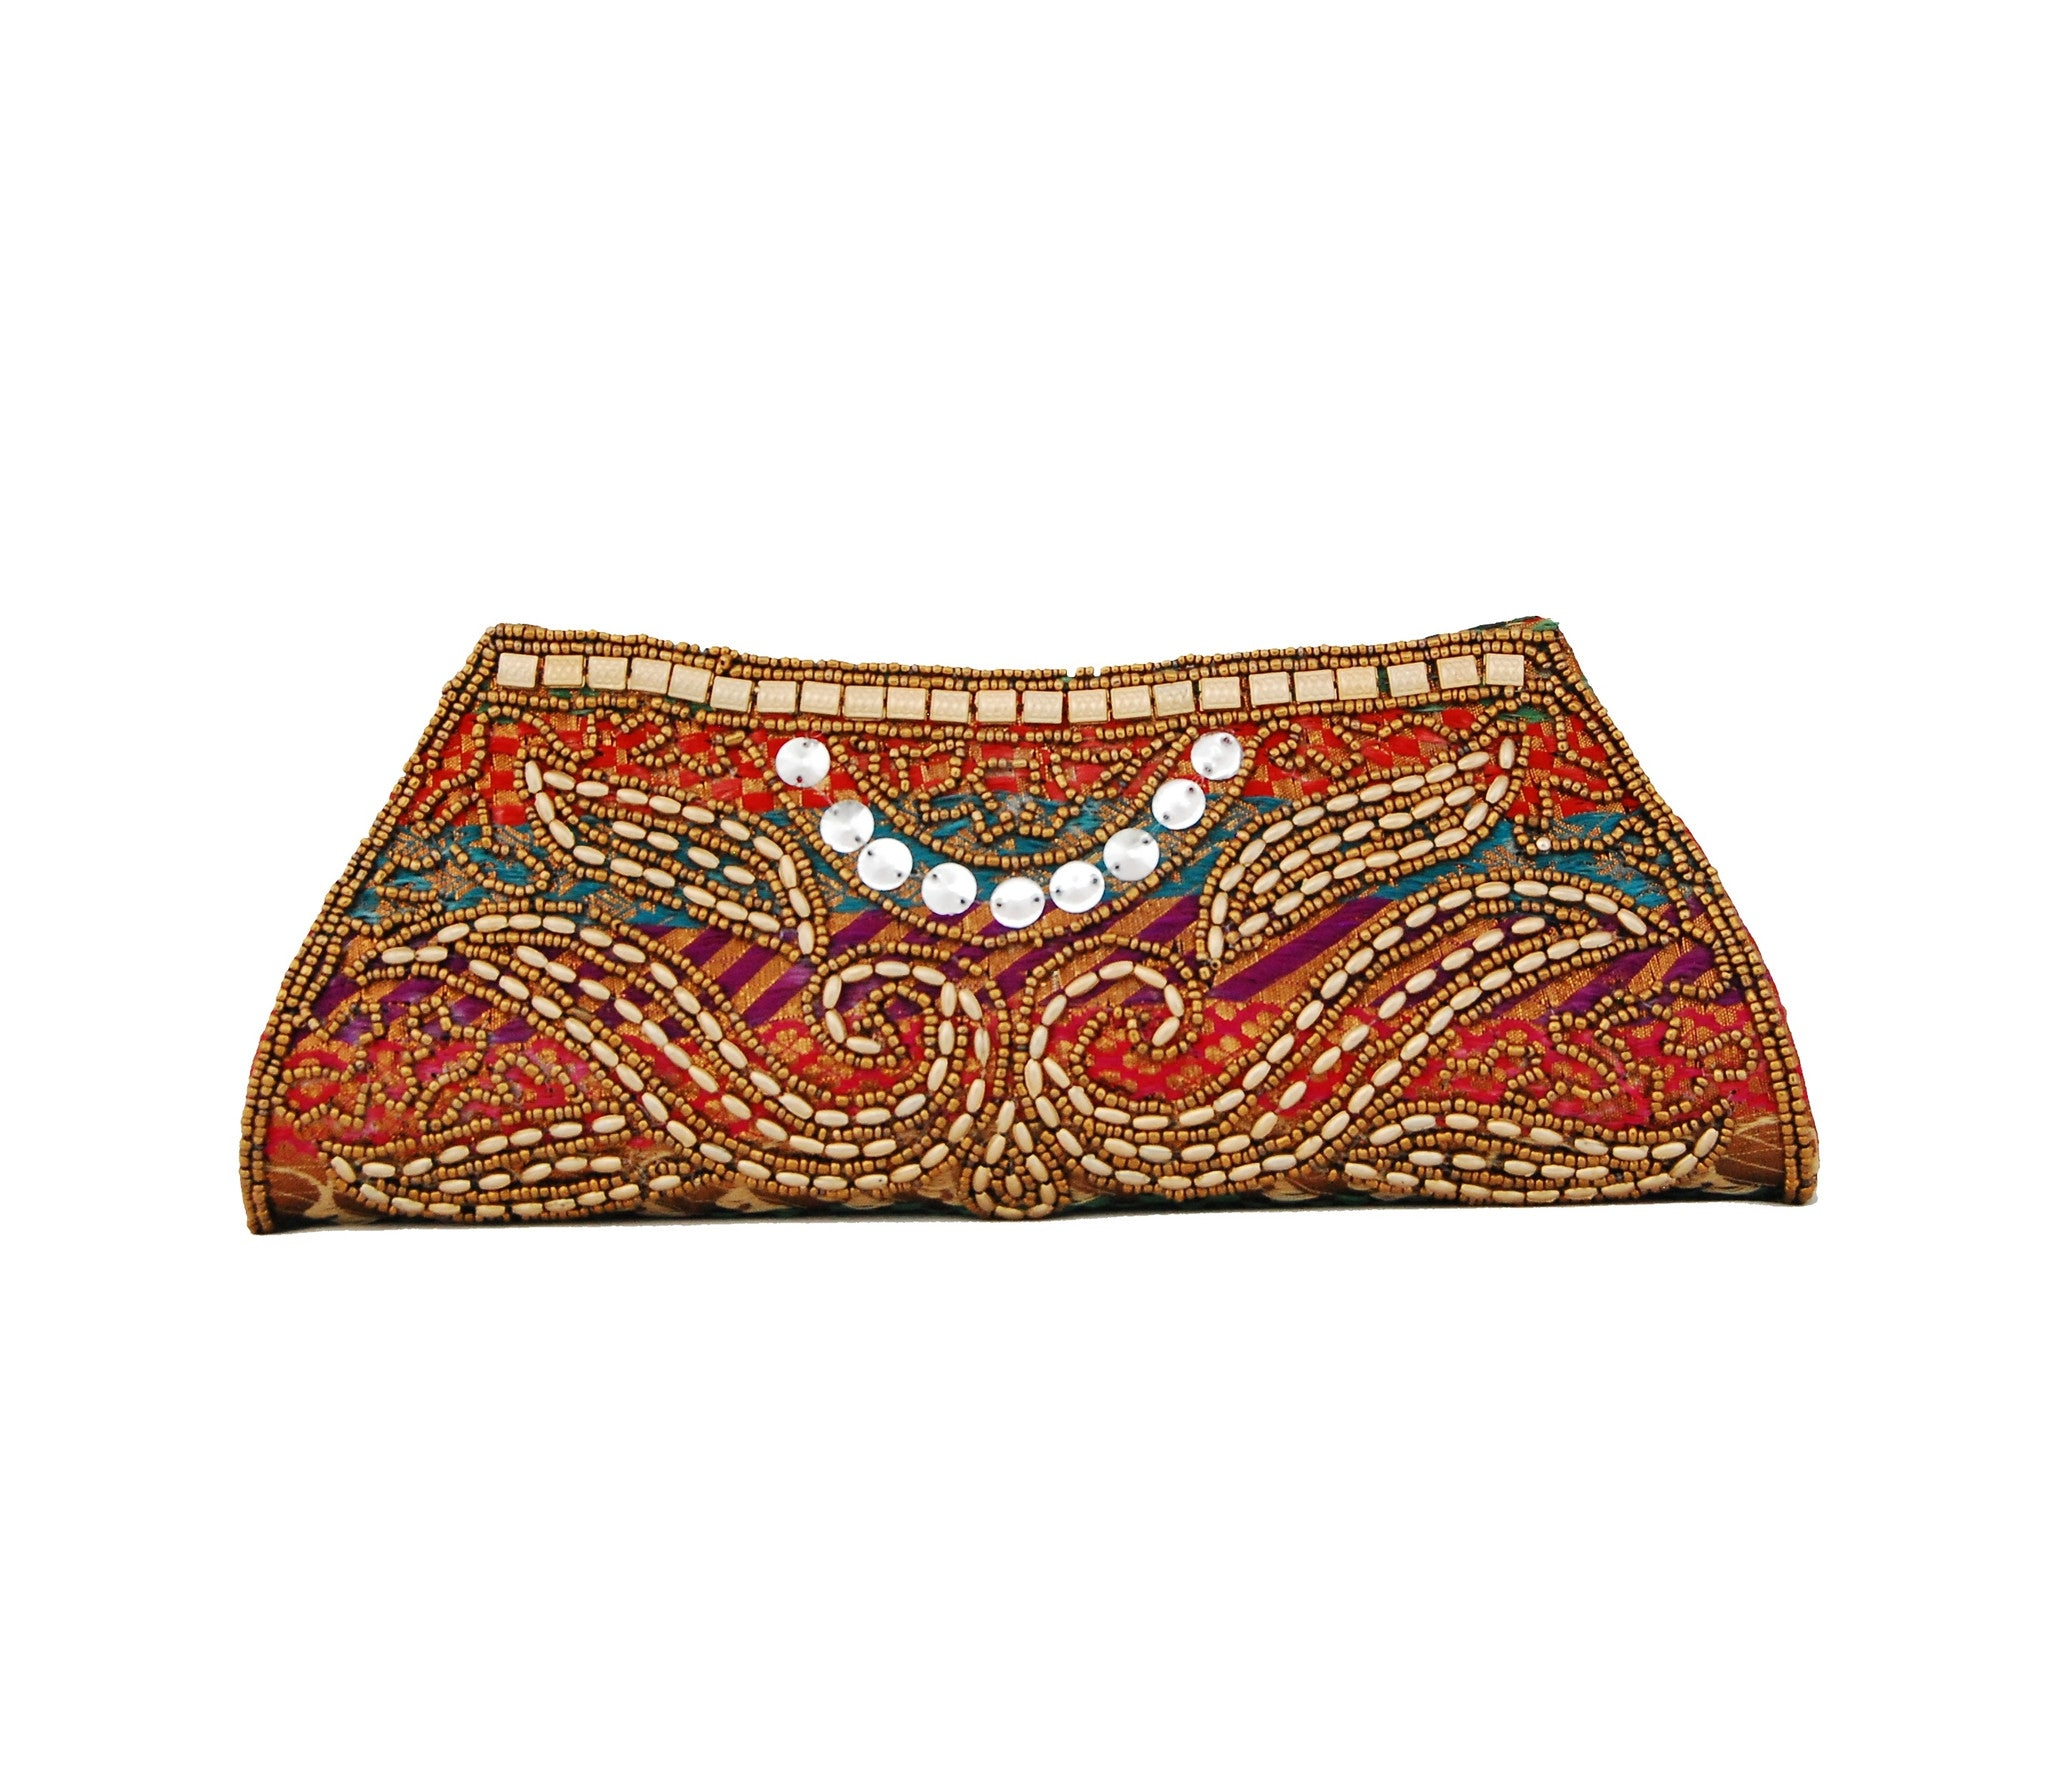 Multicolor Dupion Silk Clutch Bag with beads and Brocade Fabric - Boutique4India Inc.